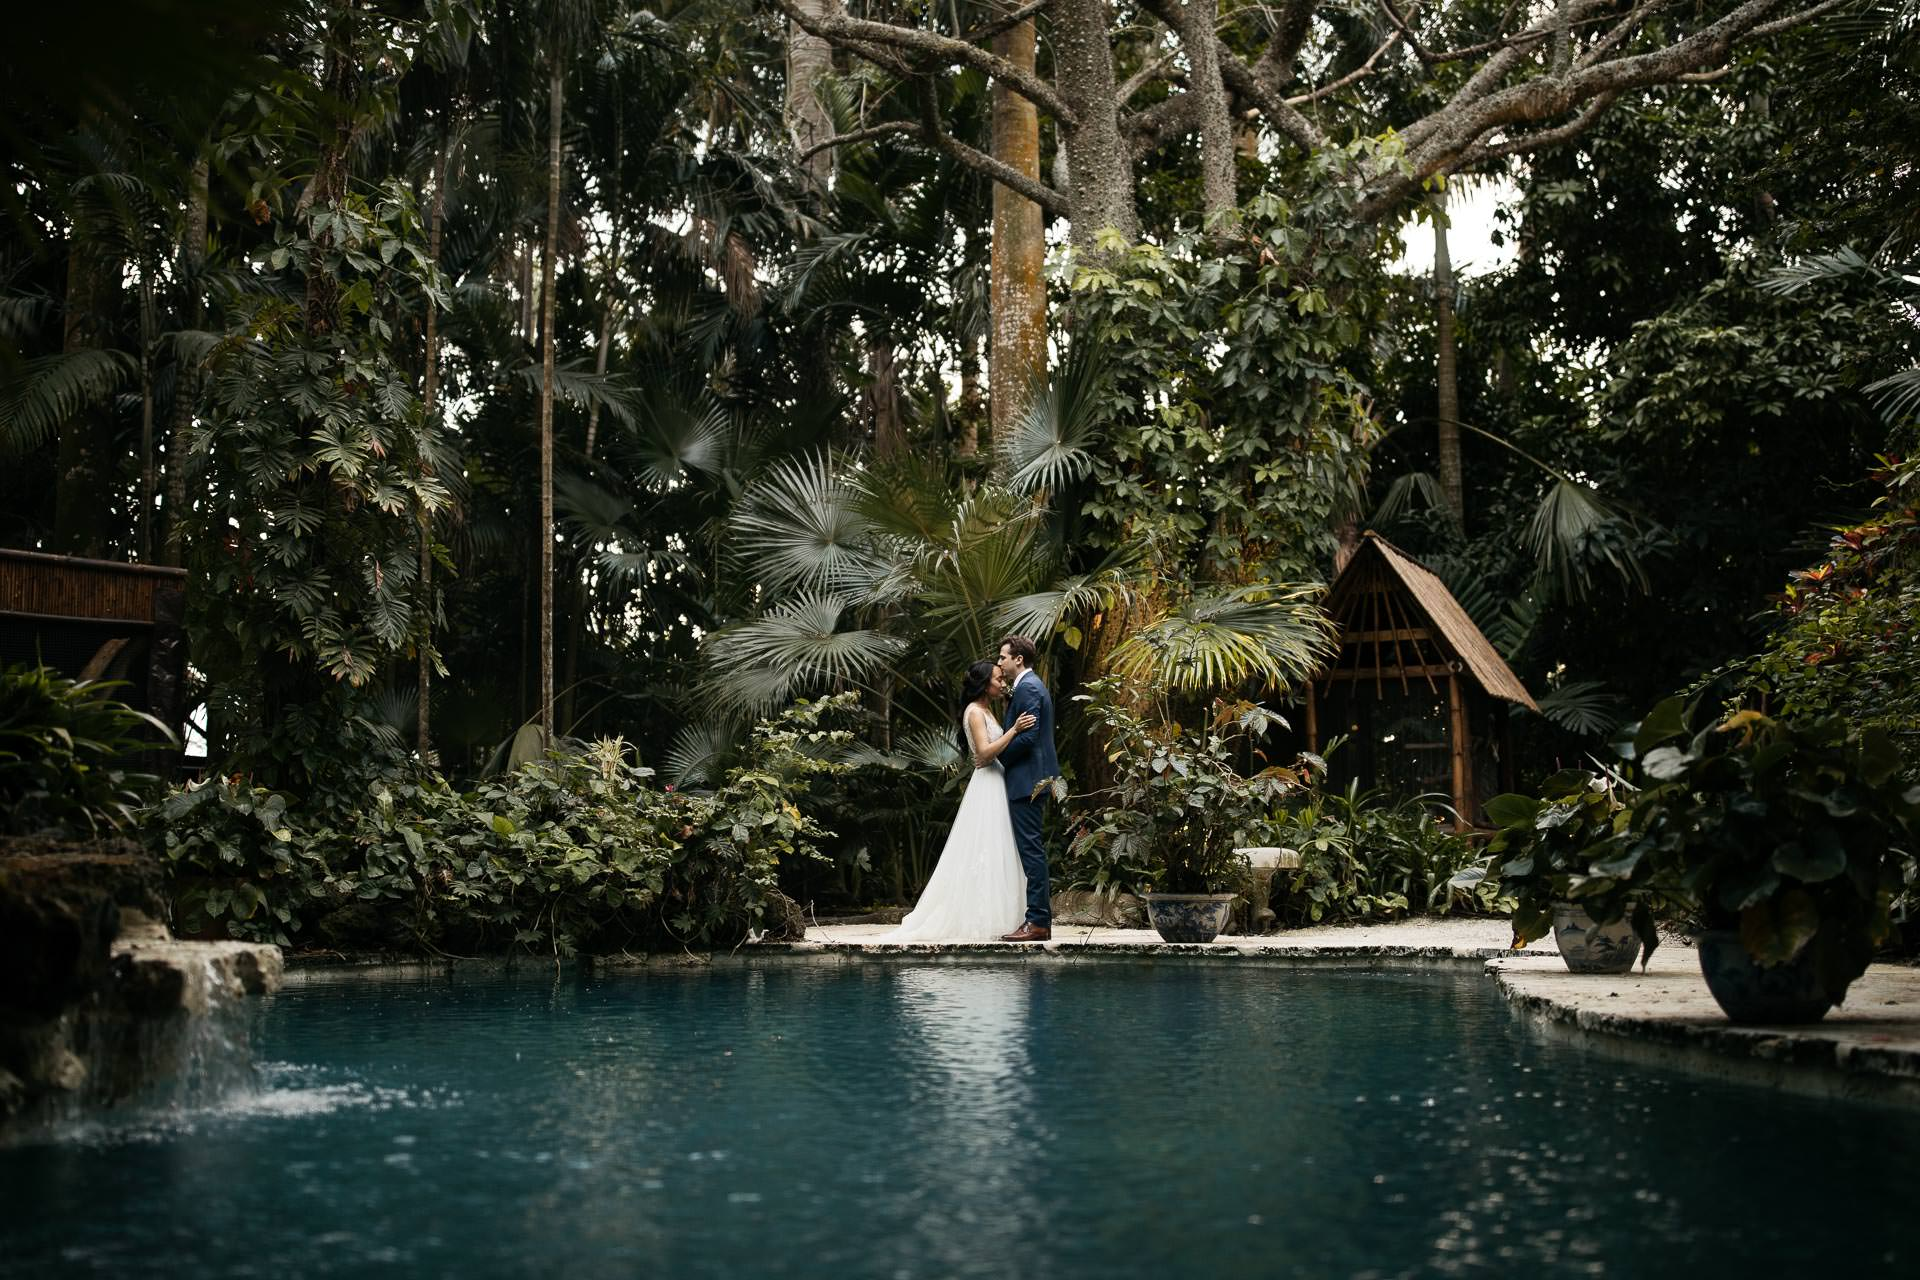 Historic Walton House Wedding, Florida, by Jean-Laurent Gaudy